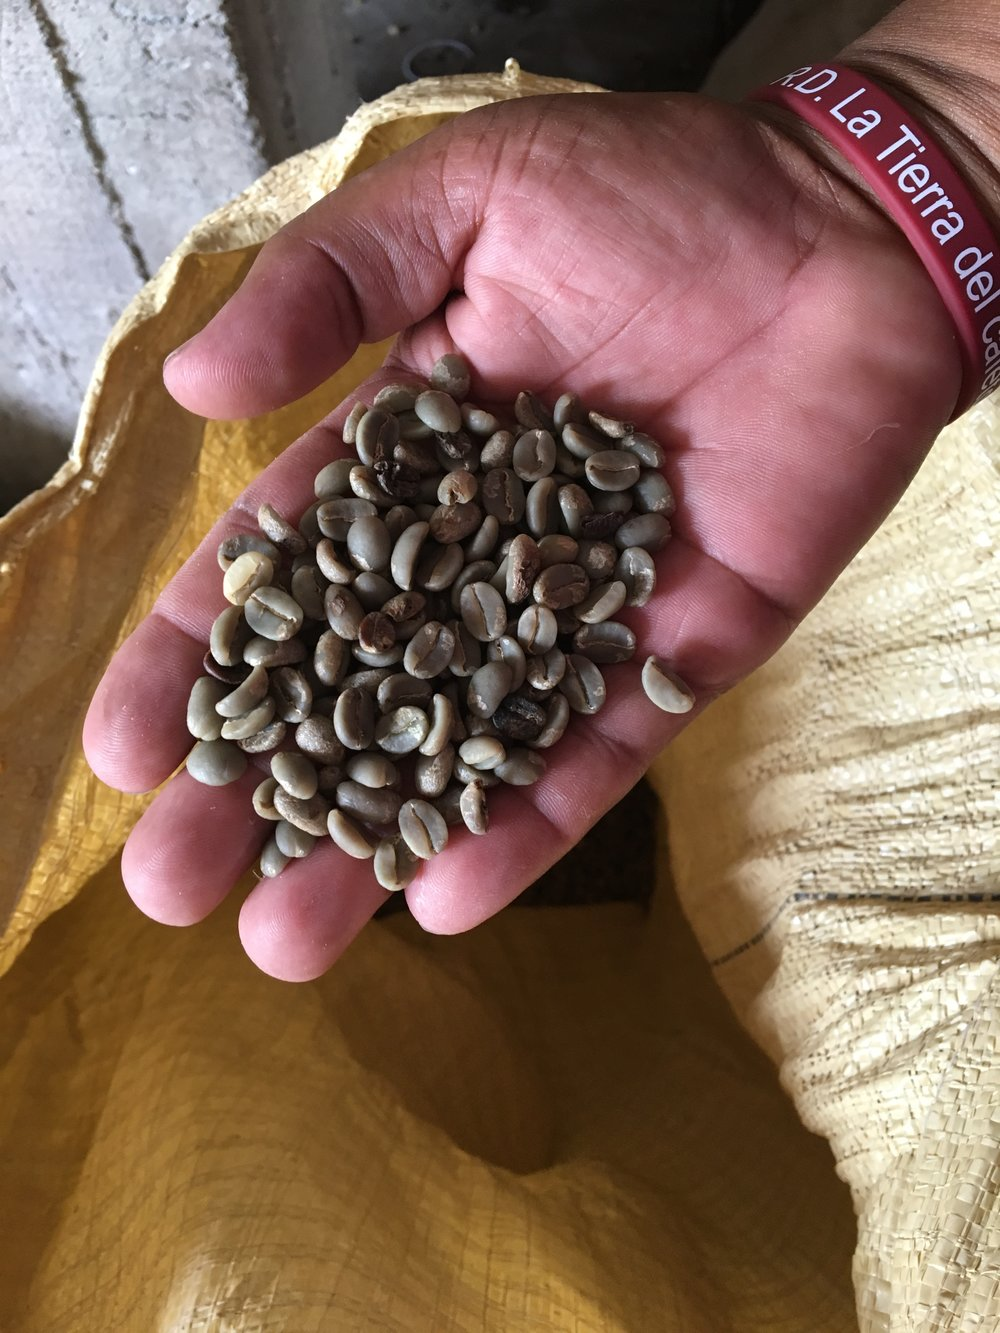 Green coffee beans (unroasted) in El Naranjito